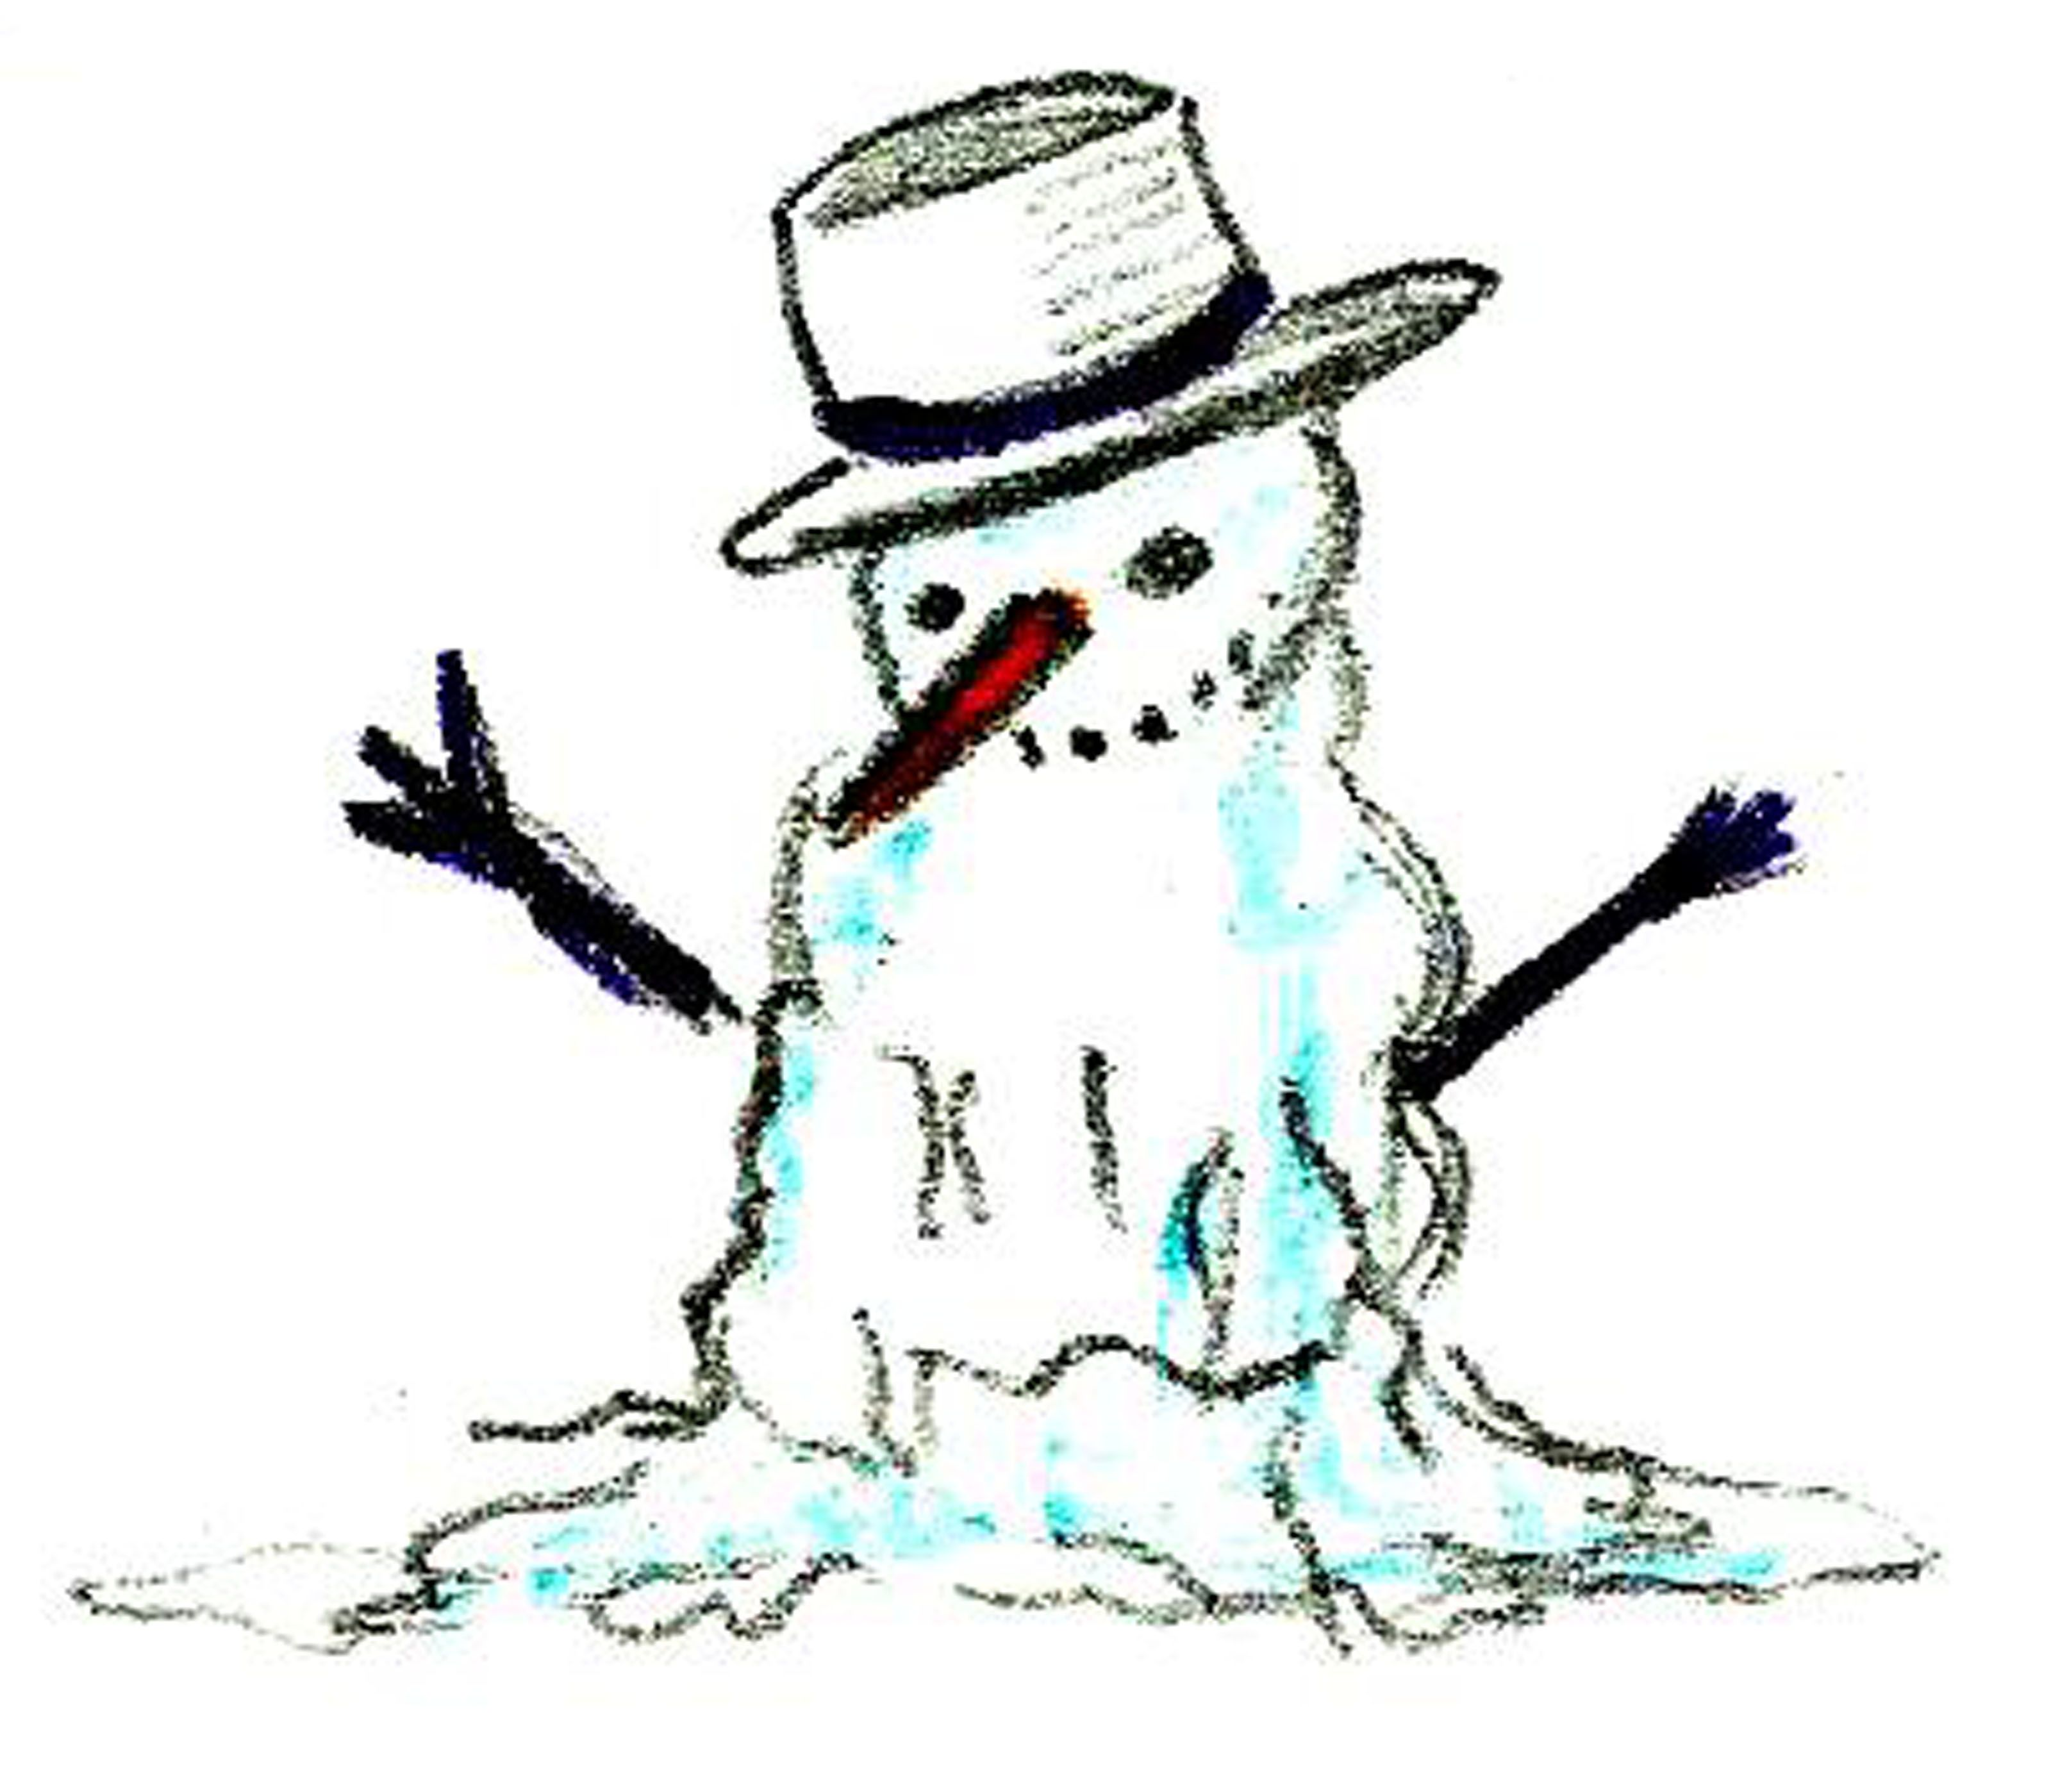 Melted snowman clipart free - ClipartFest | Crafts | Pinterest ... for Melting Snowman Clipart  76uhy